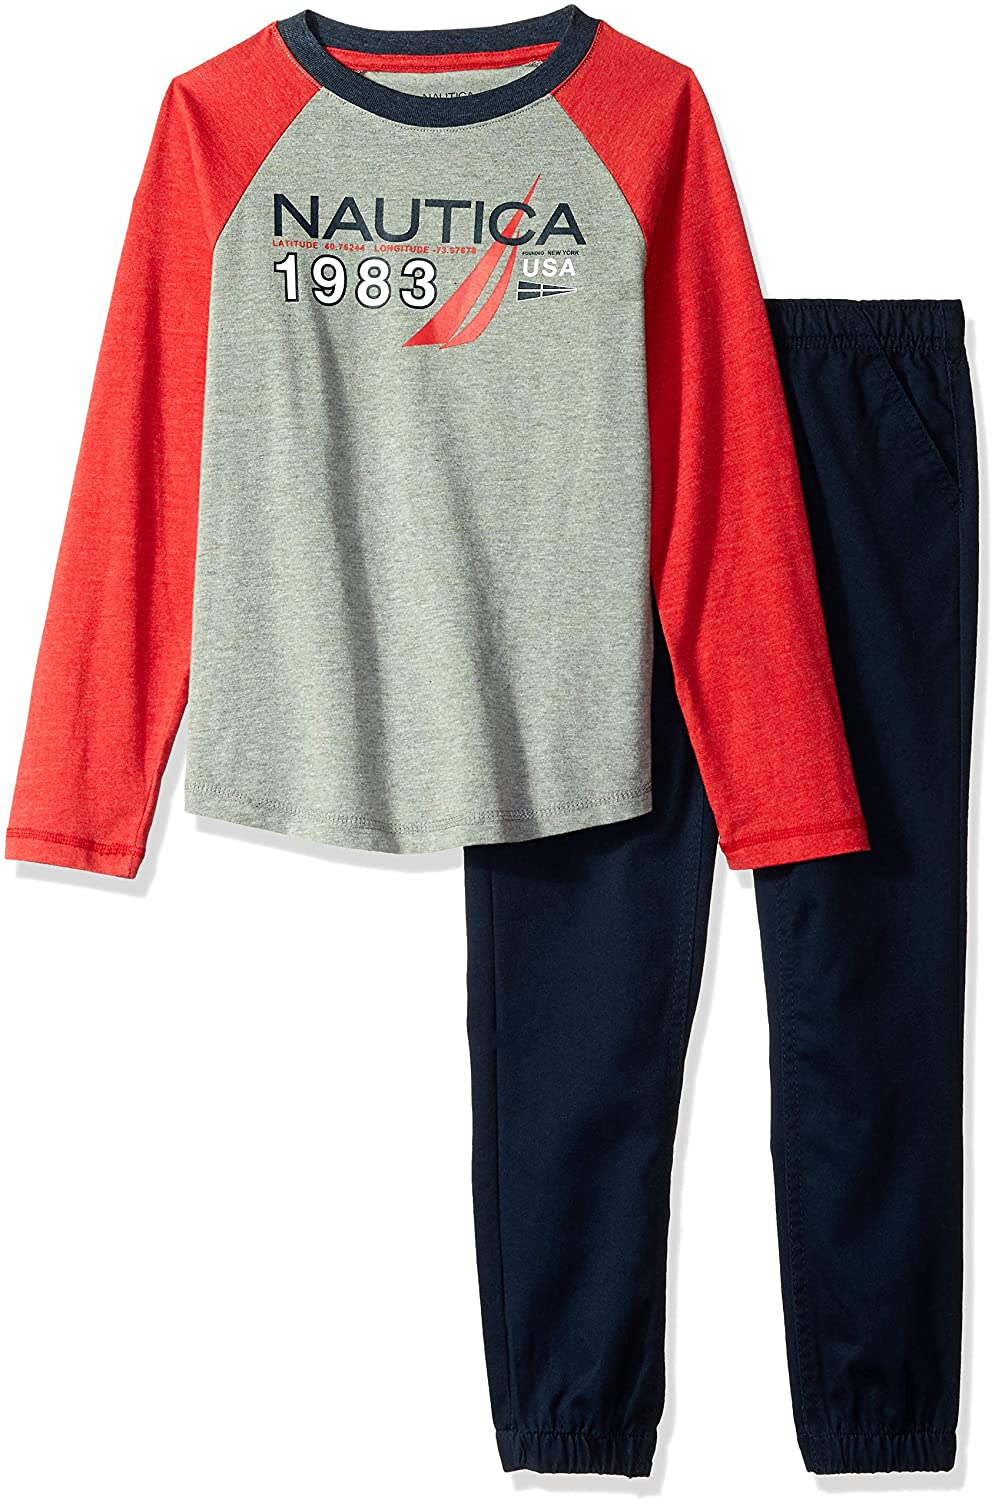 Nautica Kids & Baby 2 Pieces Tee Pants Set, Red/Gray, 4T